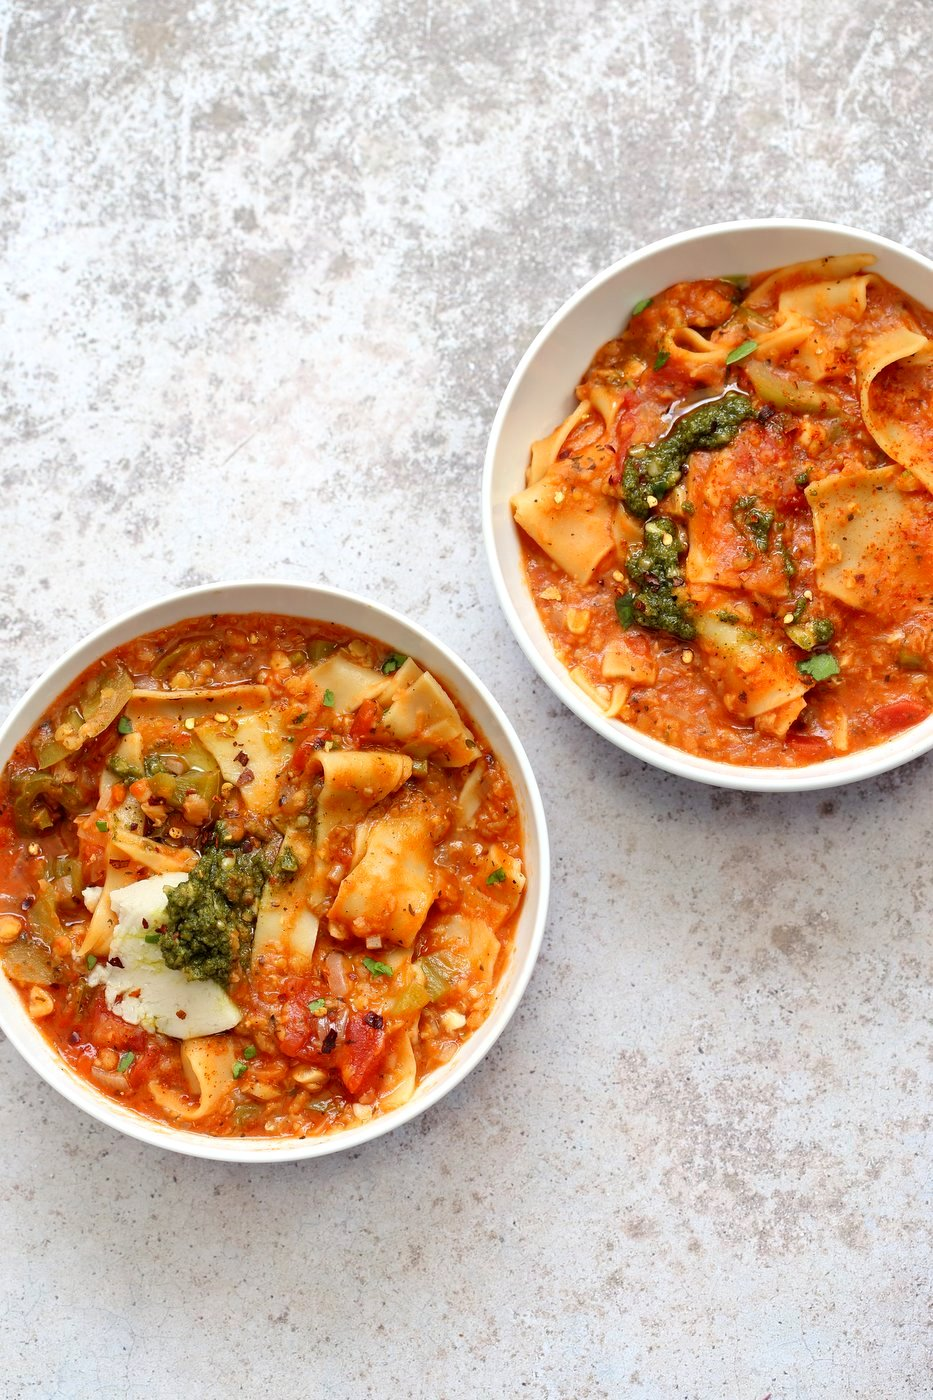 Instant Pot Lasagna Soup - Vegan Lasagna Soup with lasagna noodles, veggies, red lentils and basil. 1 Pot weekday meal. #Vegan #Nutfree #Recipe. Can be #glutenfree. #veganricha | VeganRicha.com